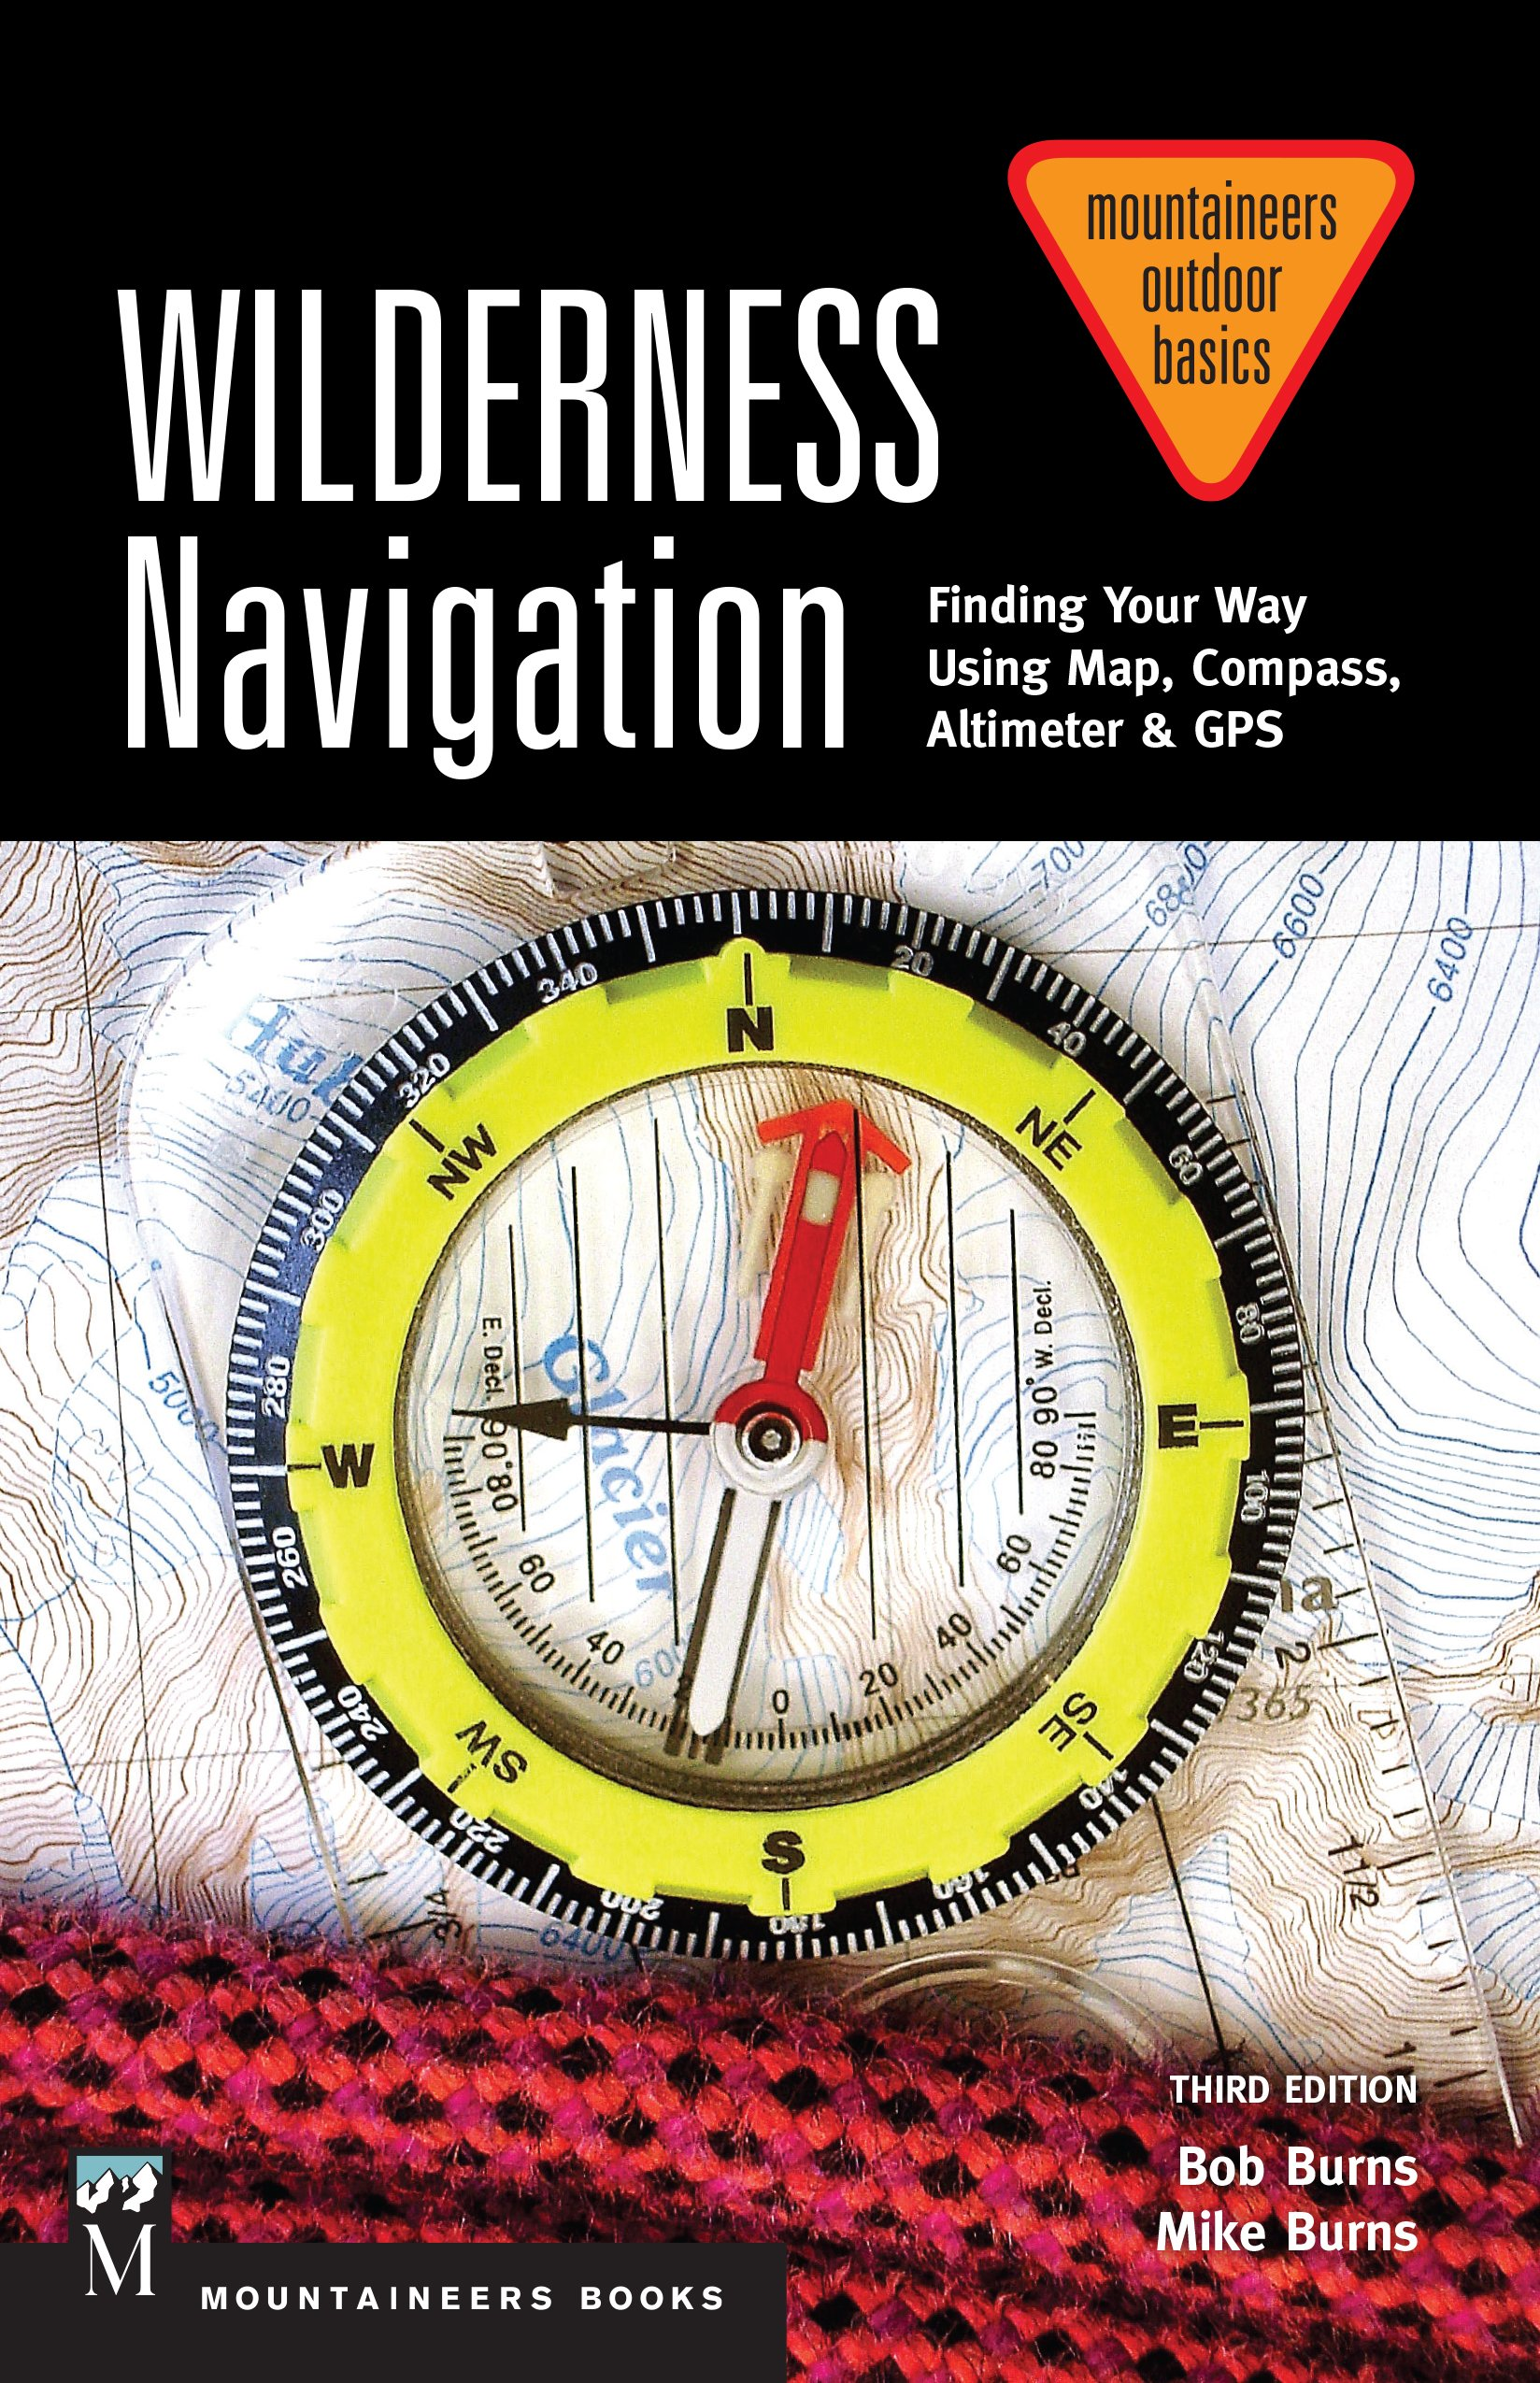 Wilderness Navigation: Finding Your Way Using Map; Compass; Altimeter & GPS (Mountaineers Outdoor Basics)